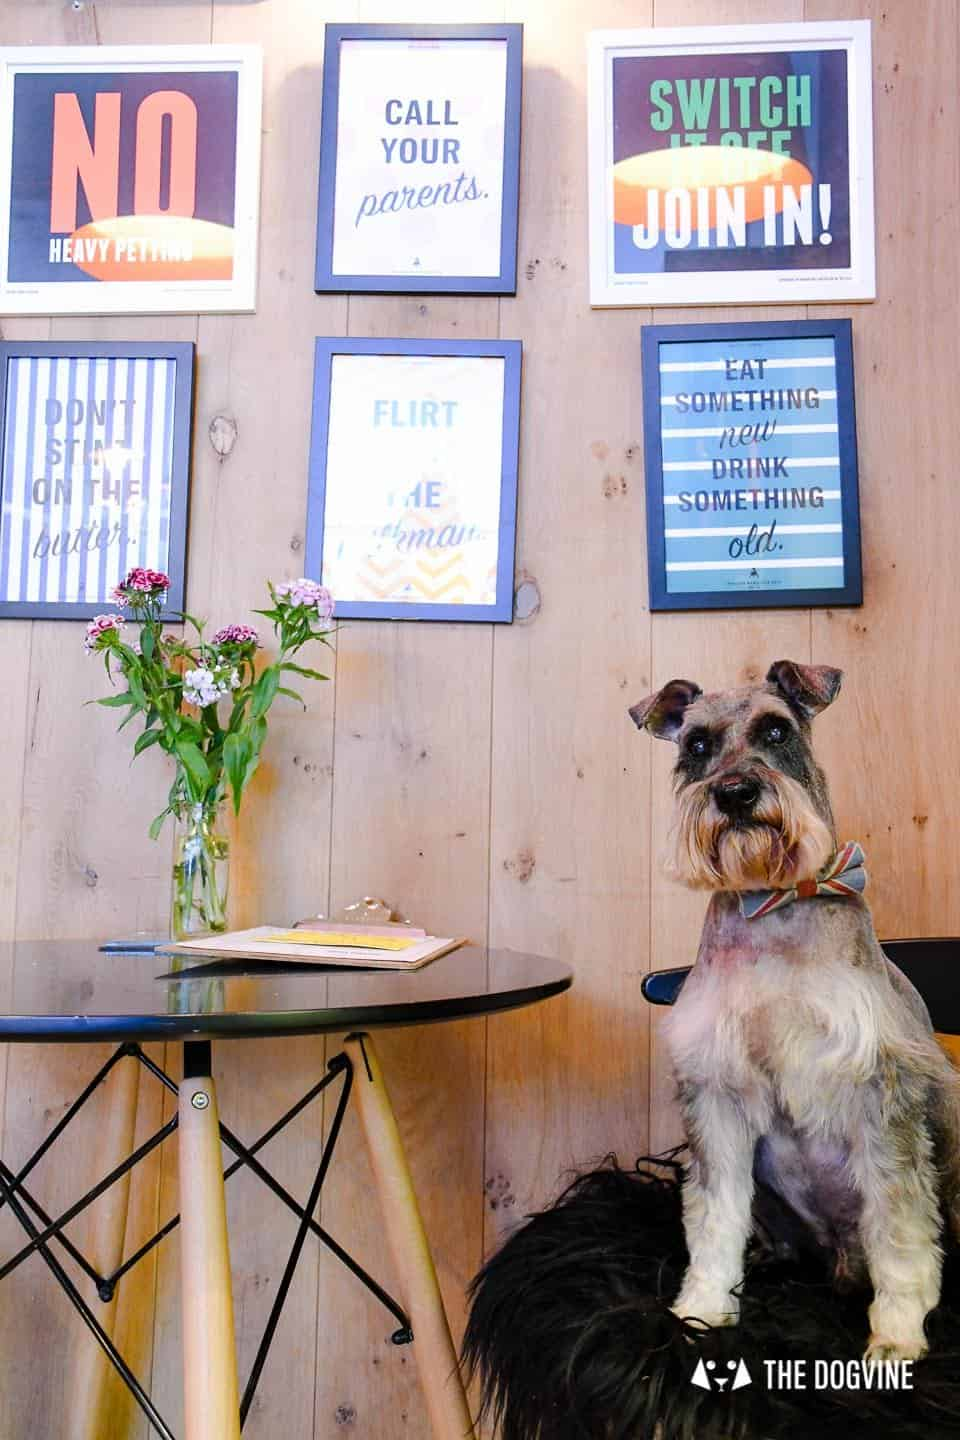 My Dog Friendly London By Pepper Chung the Schnauzer - Dog Friendly Notting Hill 5